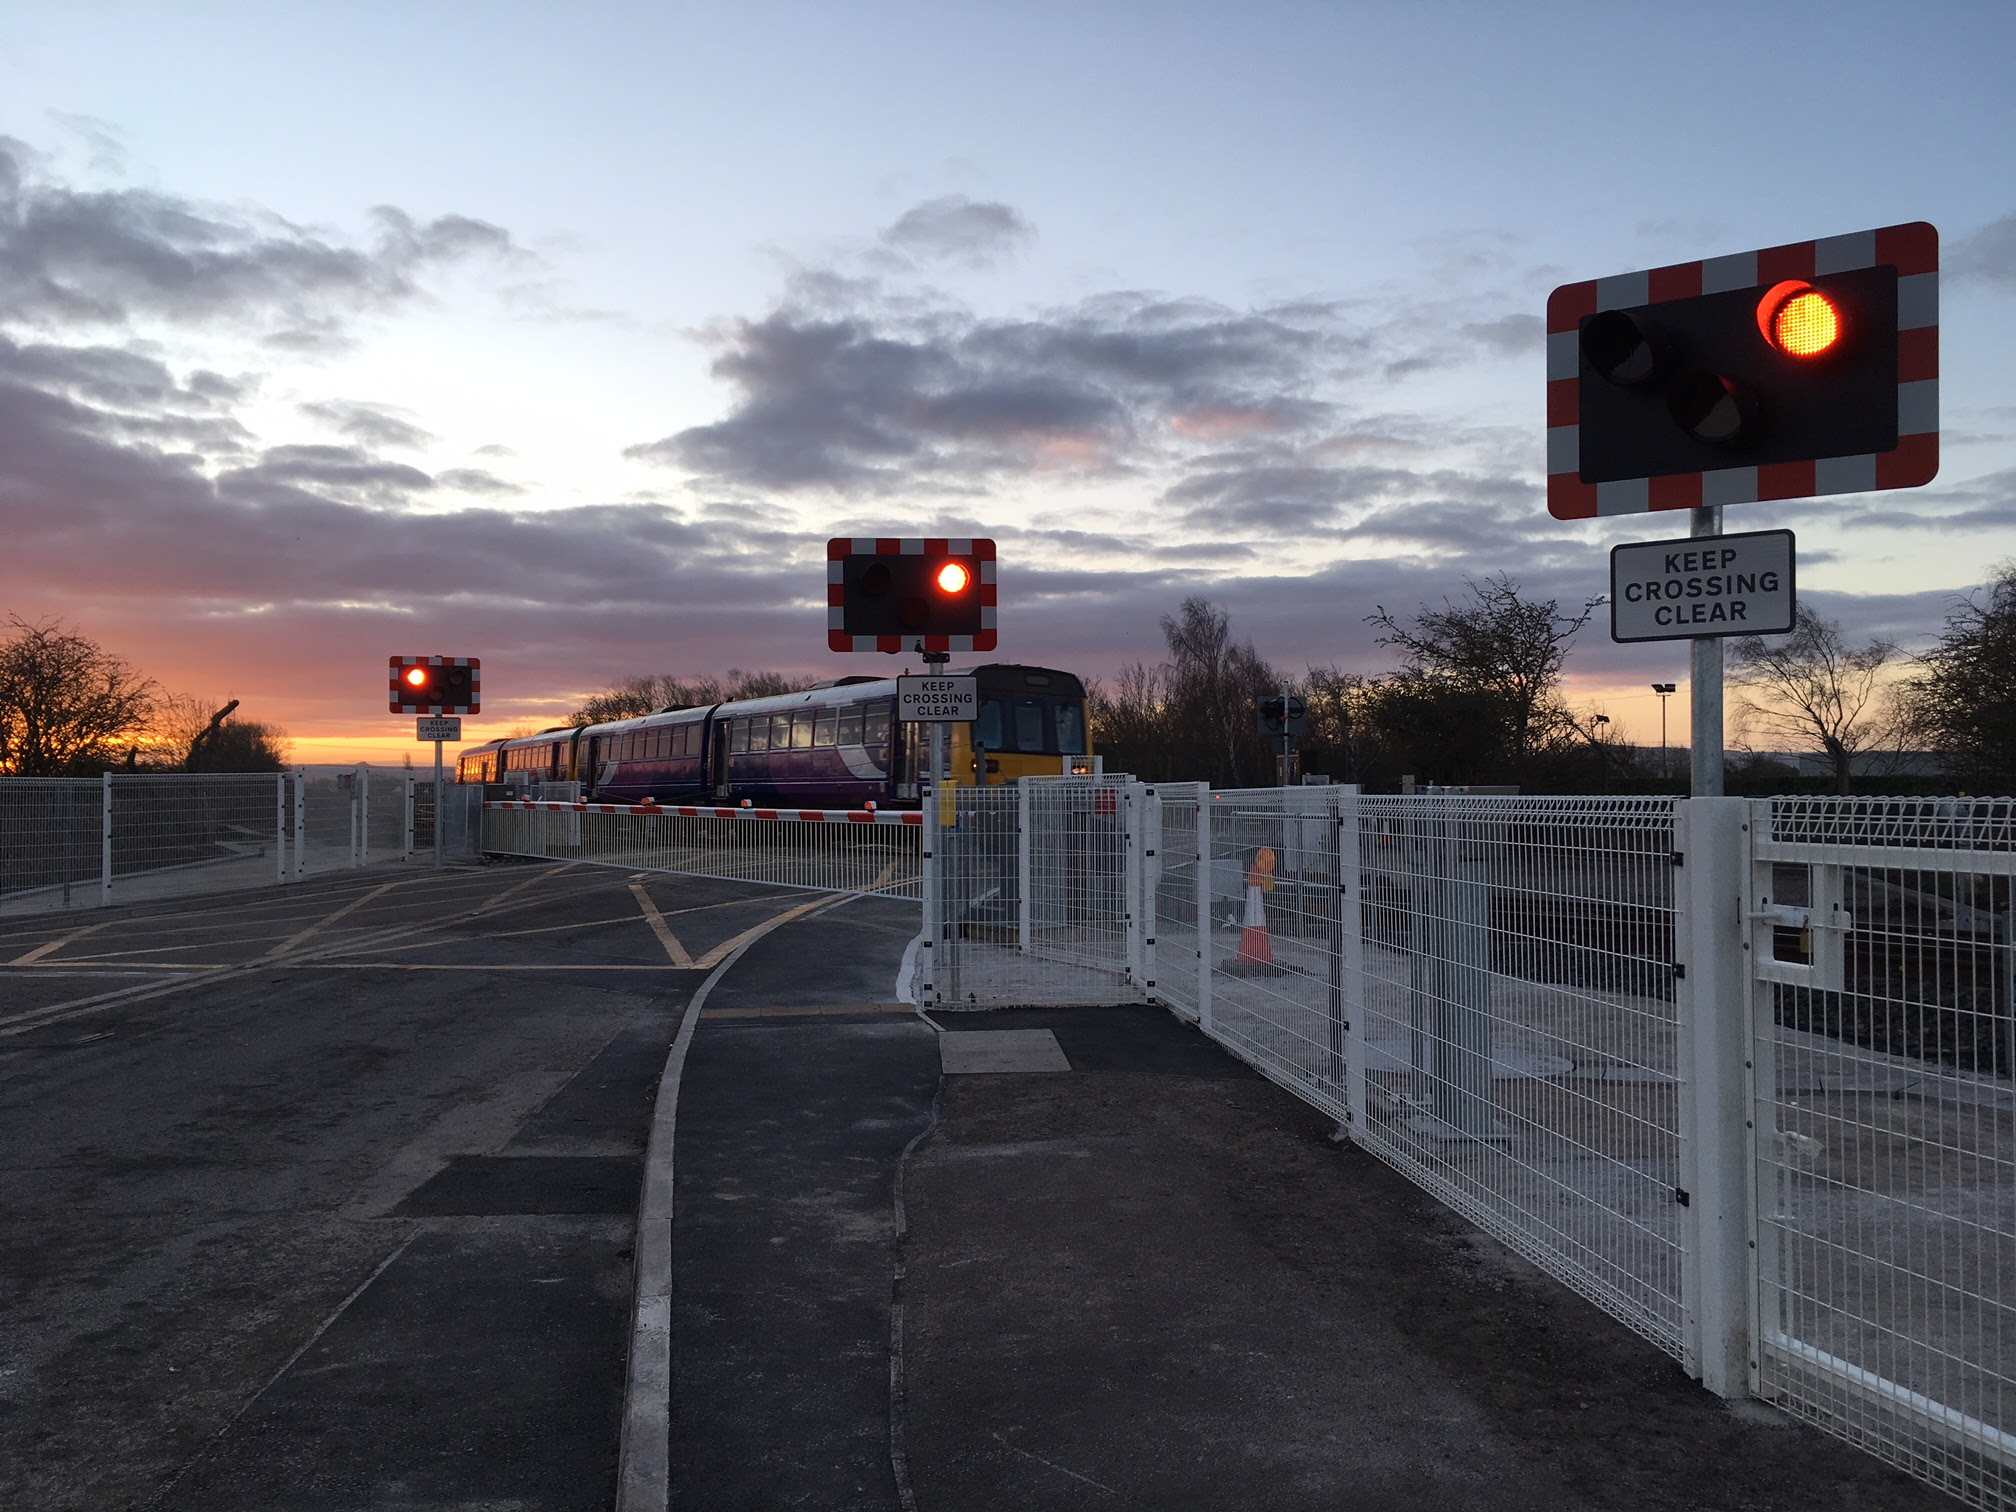 Network Rail announces £750m contract awards to deliver signalling nationwide